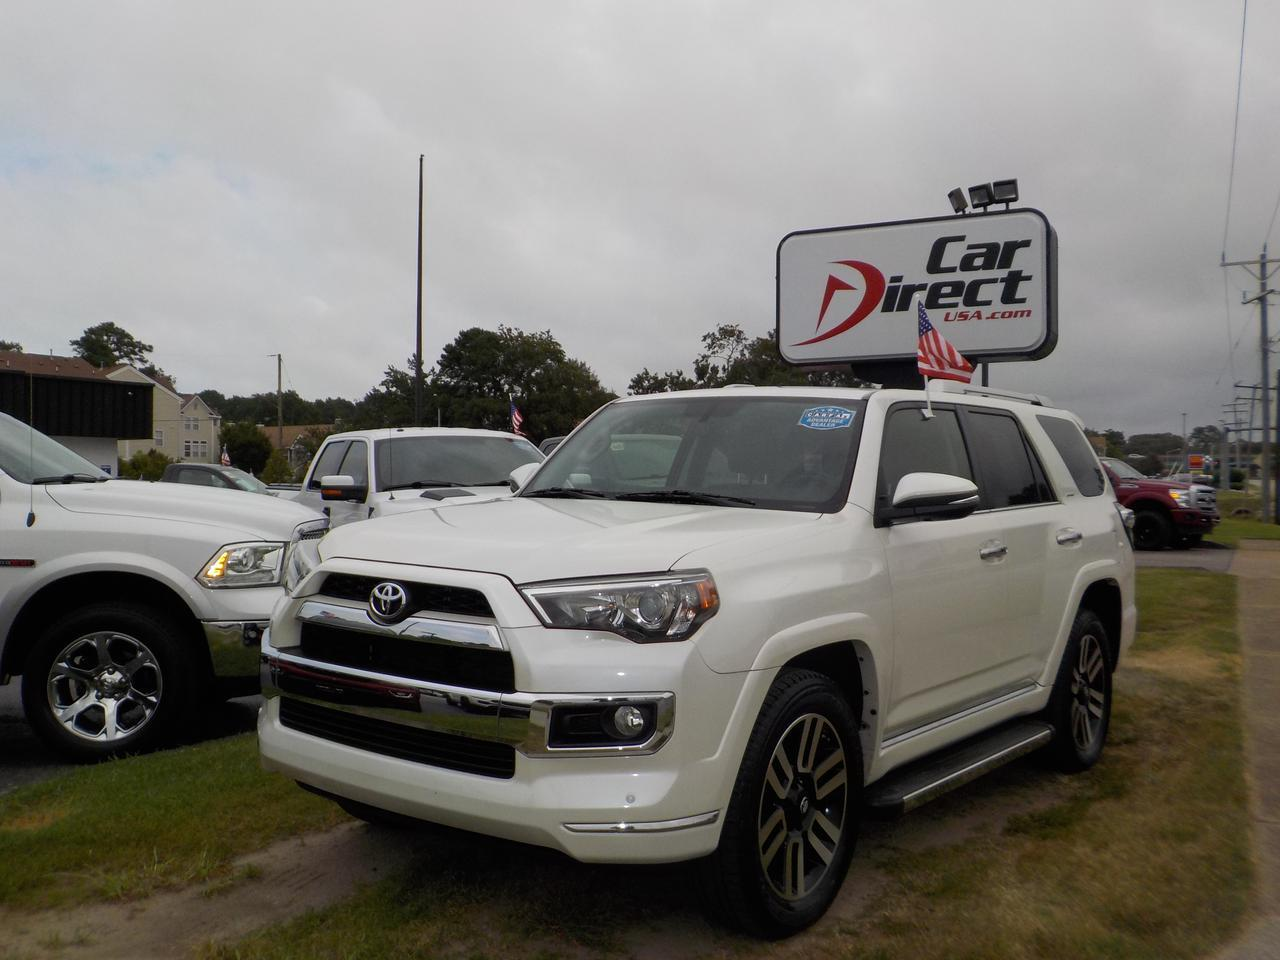 2016 TOYOTA 4RUNNER LIMITED 4X4, LEATHER, HEATED/COOLED SEATS, BACKUP CAM, PARKING SENSORS, 1 OWNER! Virginia Beach VA